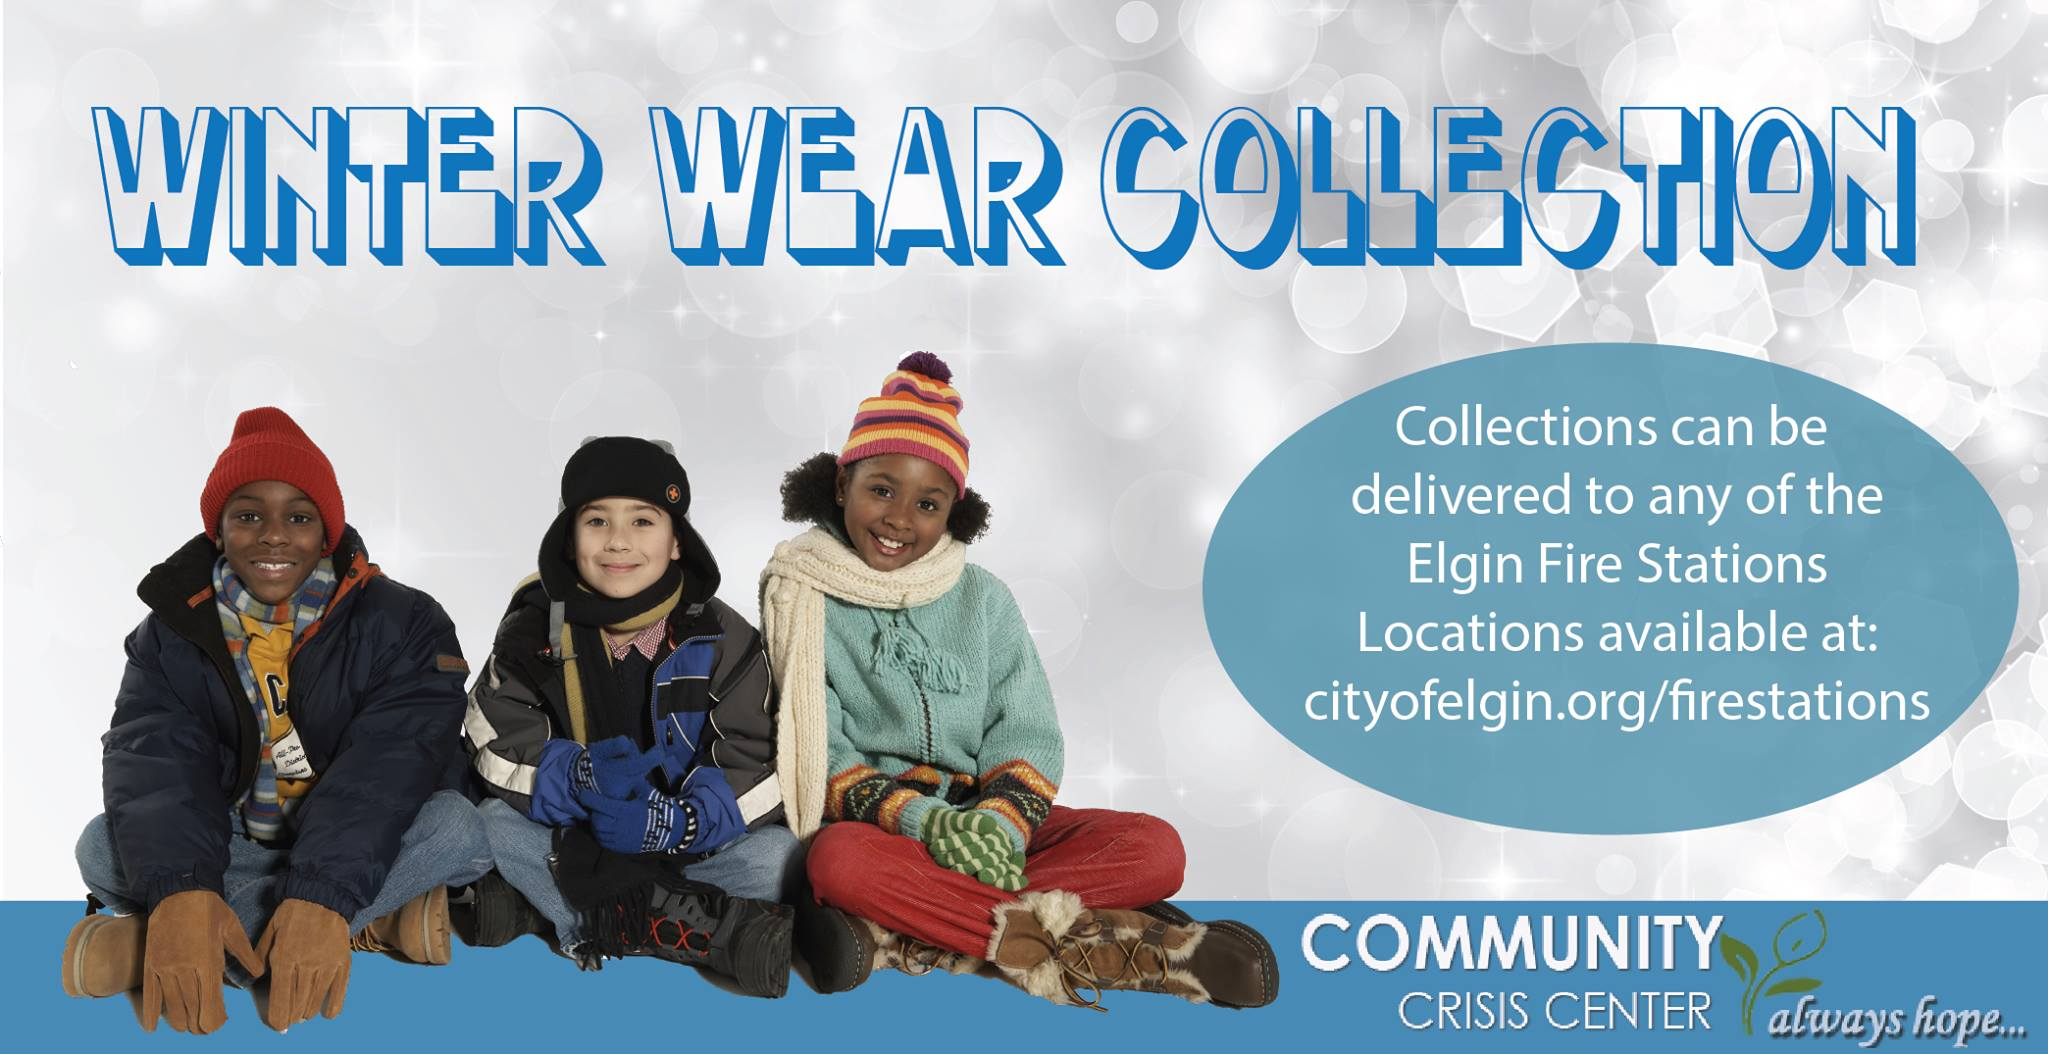 Winter Wear Collection for Community Crisis Center